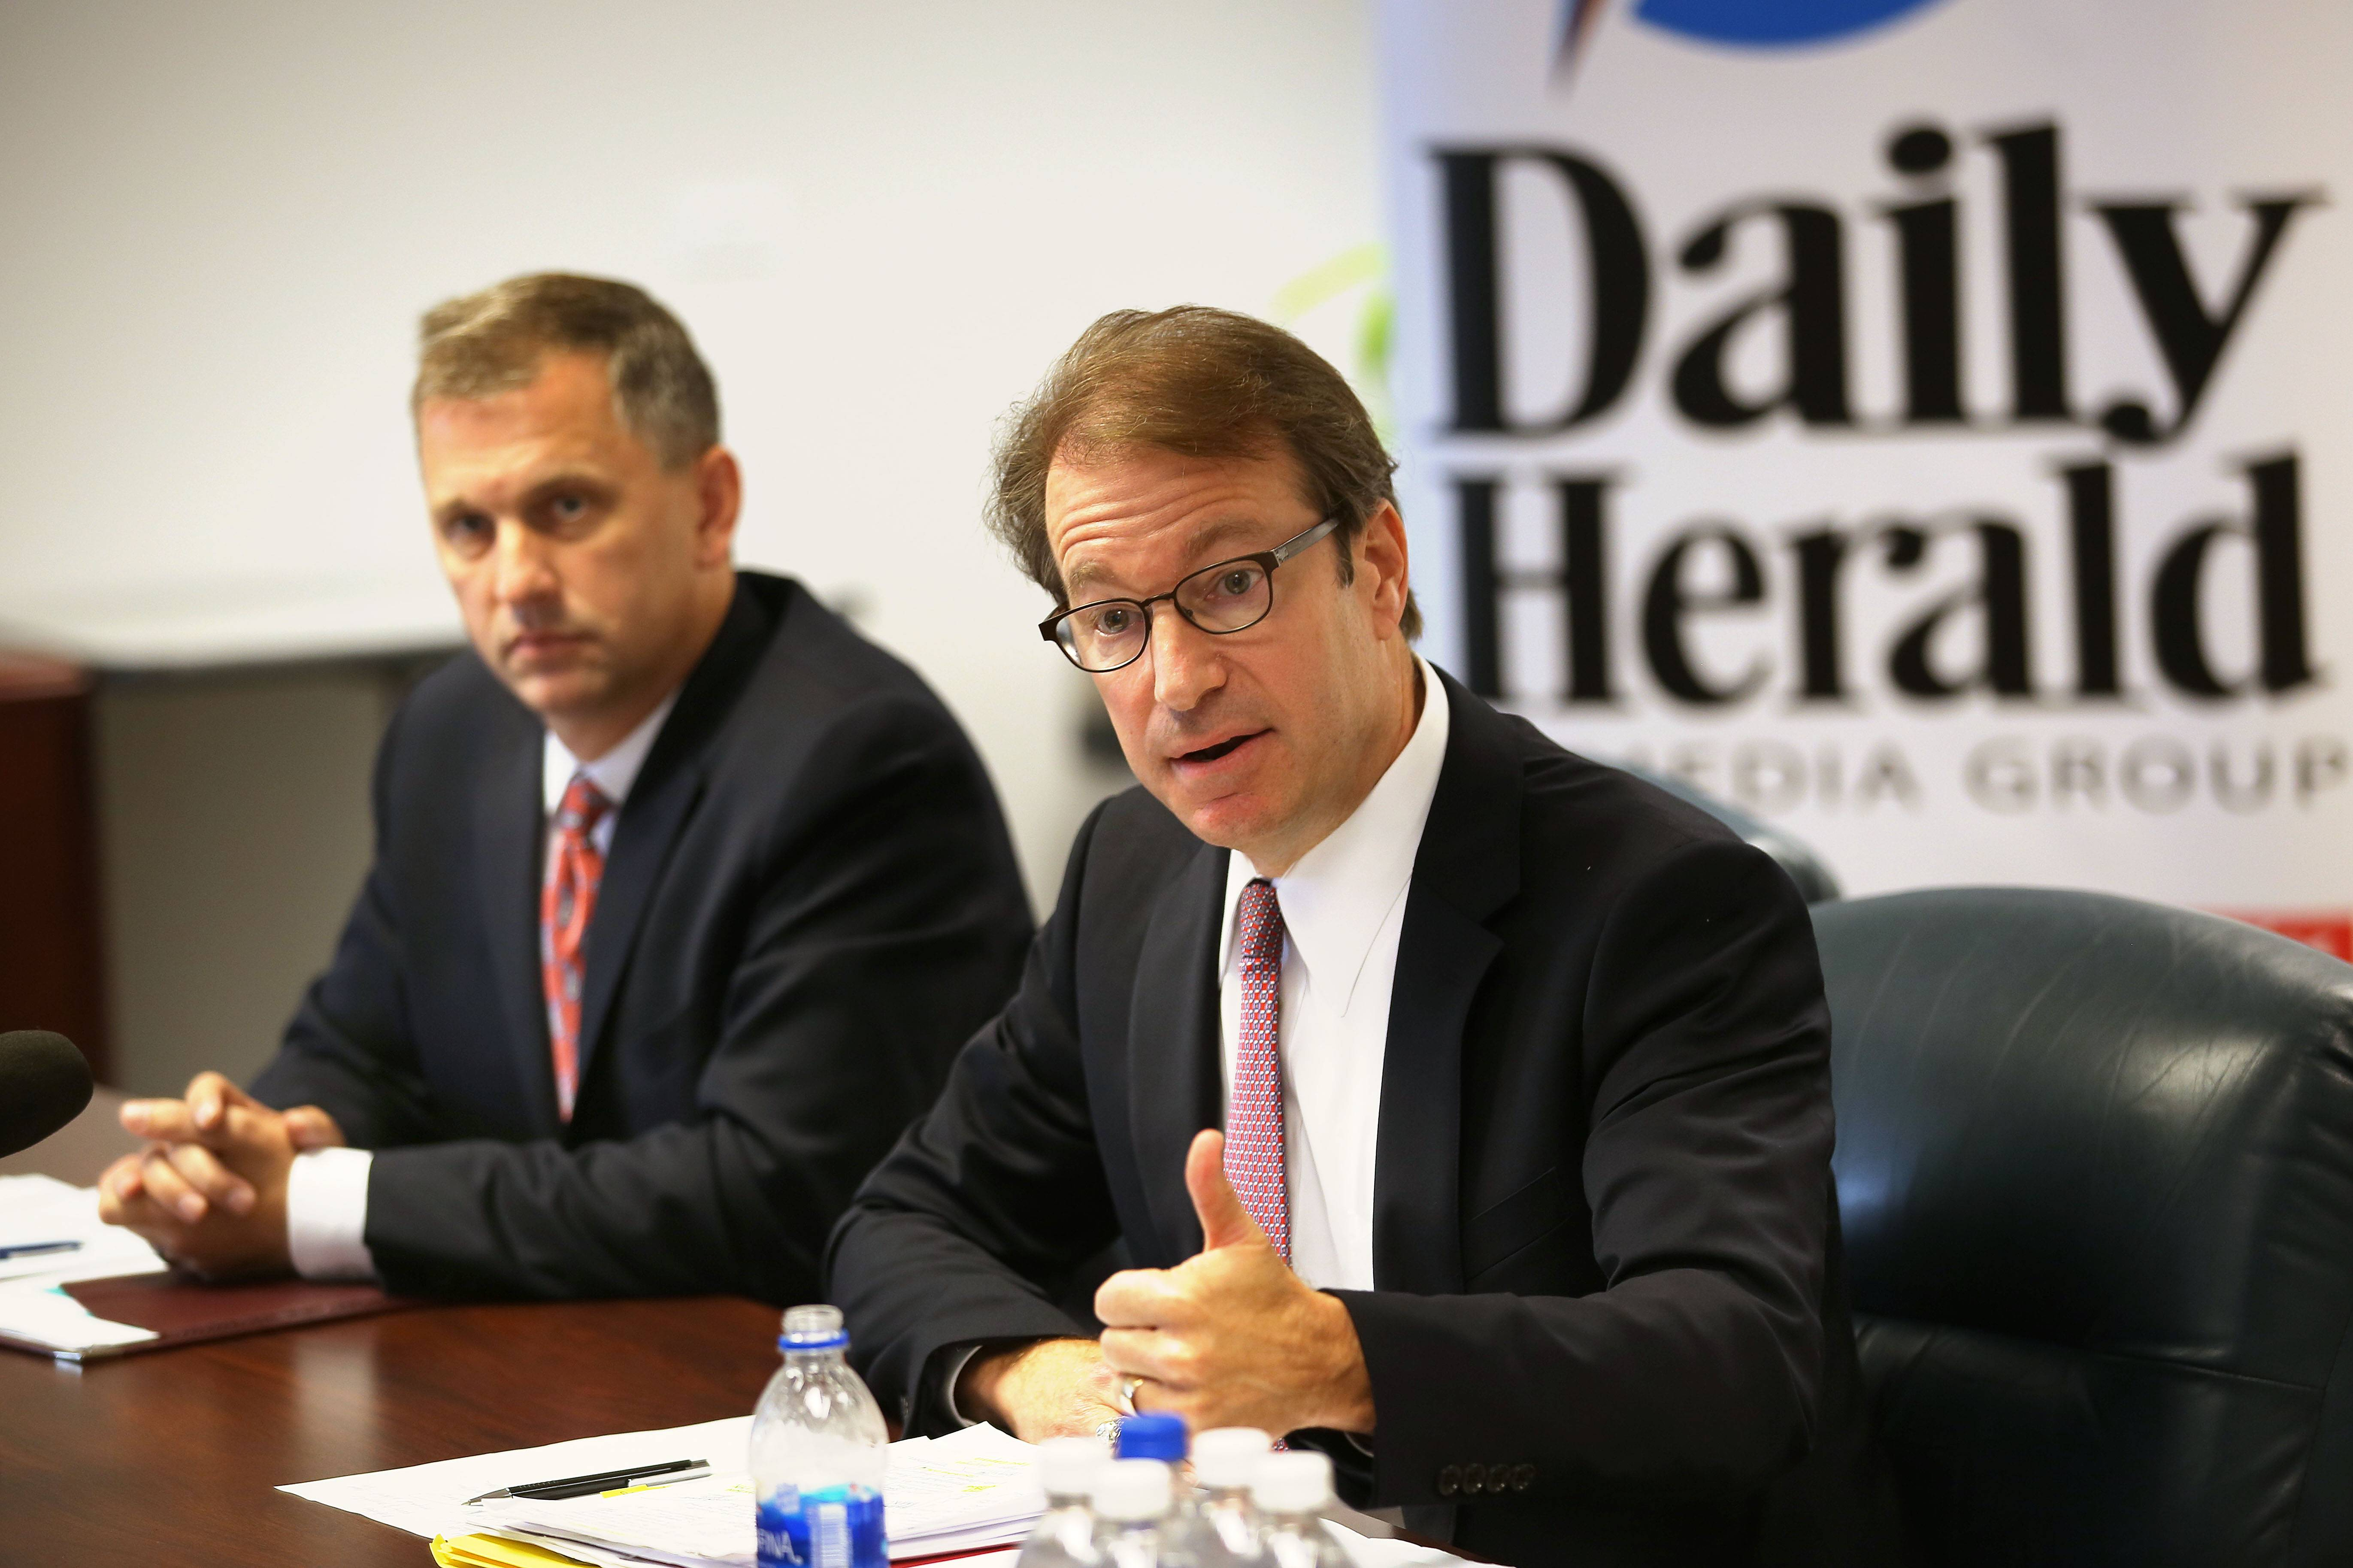 'We are really, totally at odds on this;' Roskam, Casten sharply disagree on 2017 tax law